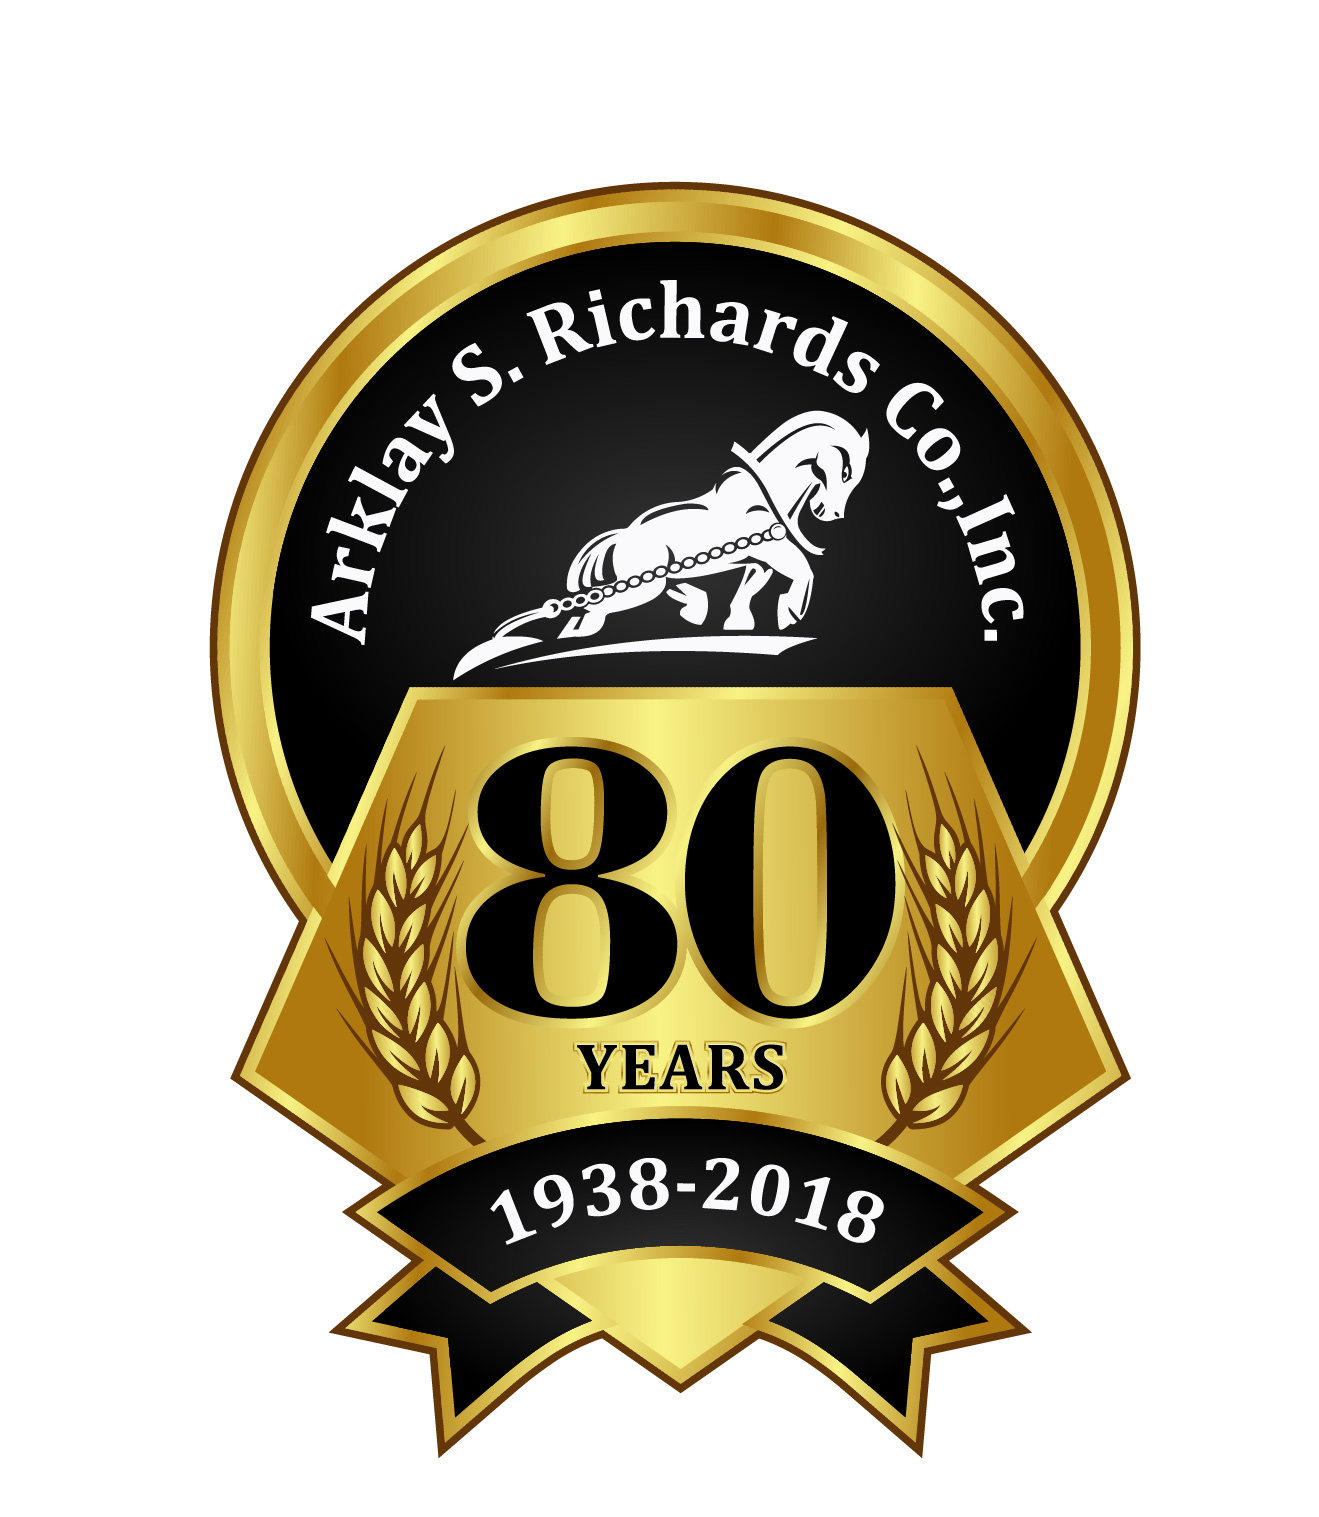 Richards 80 Years